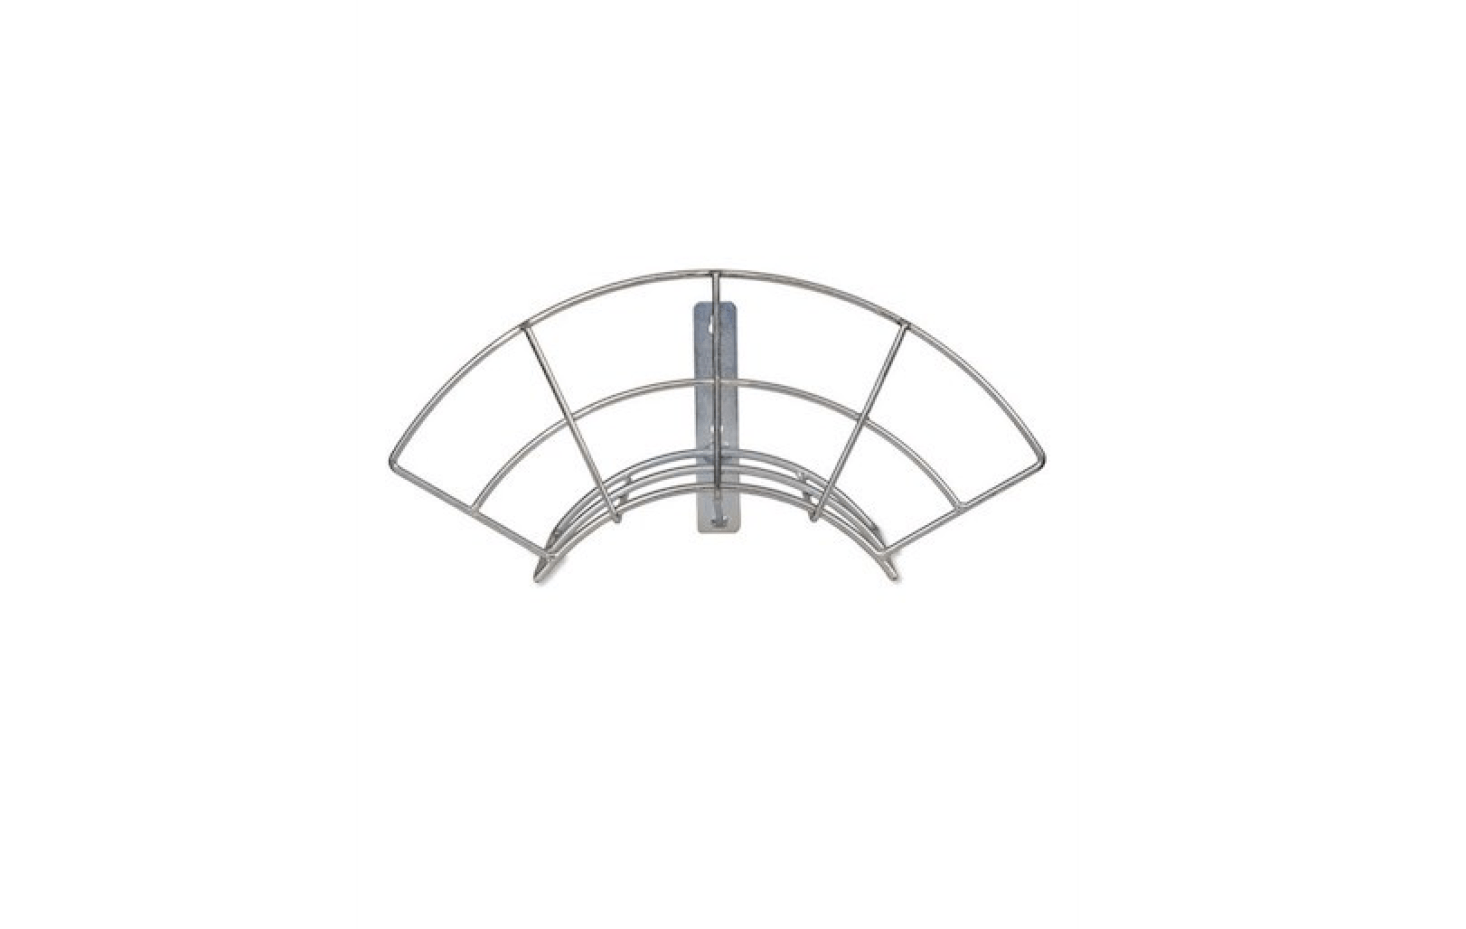 Designed to be mounted on a wall, aHose Hanger made of galvanized steel measures 22 centimeters by 46 centimeters (and is 17 centimeters deep);£20 from Garden Trading.